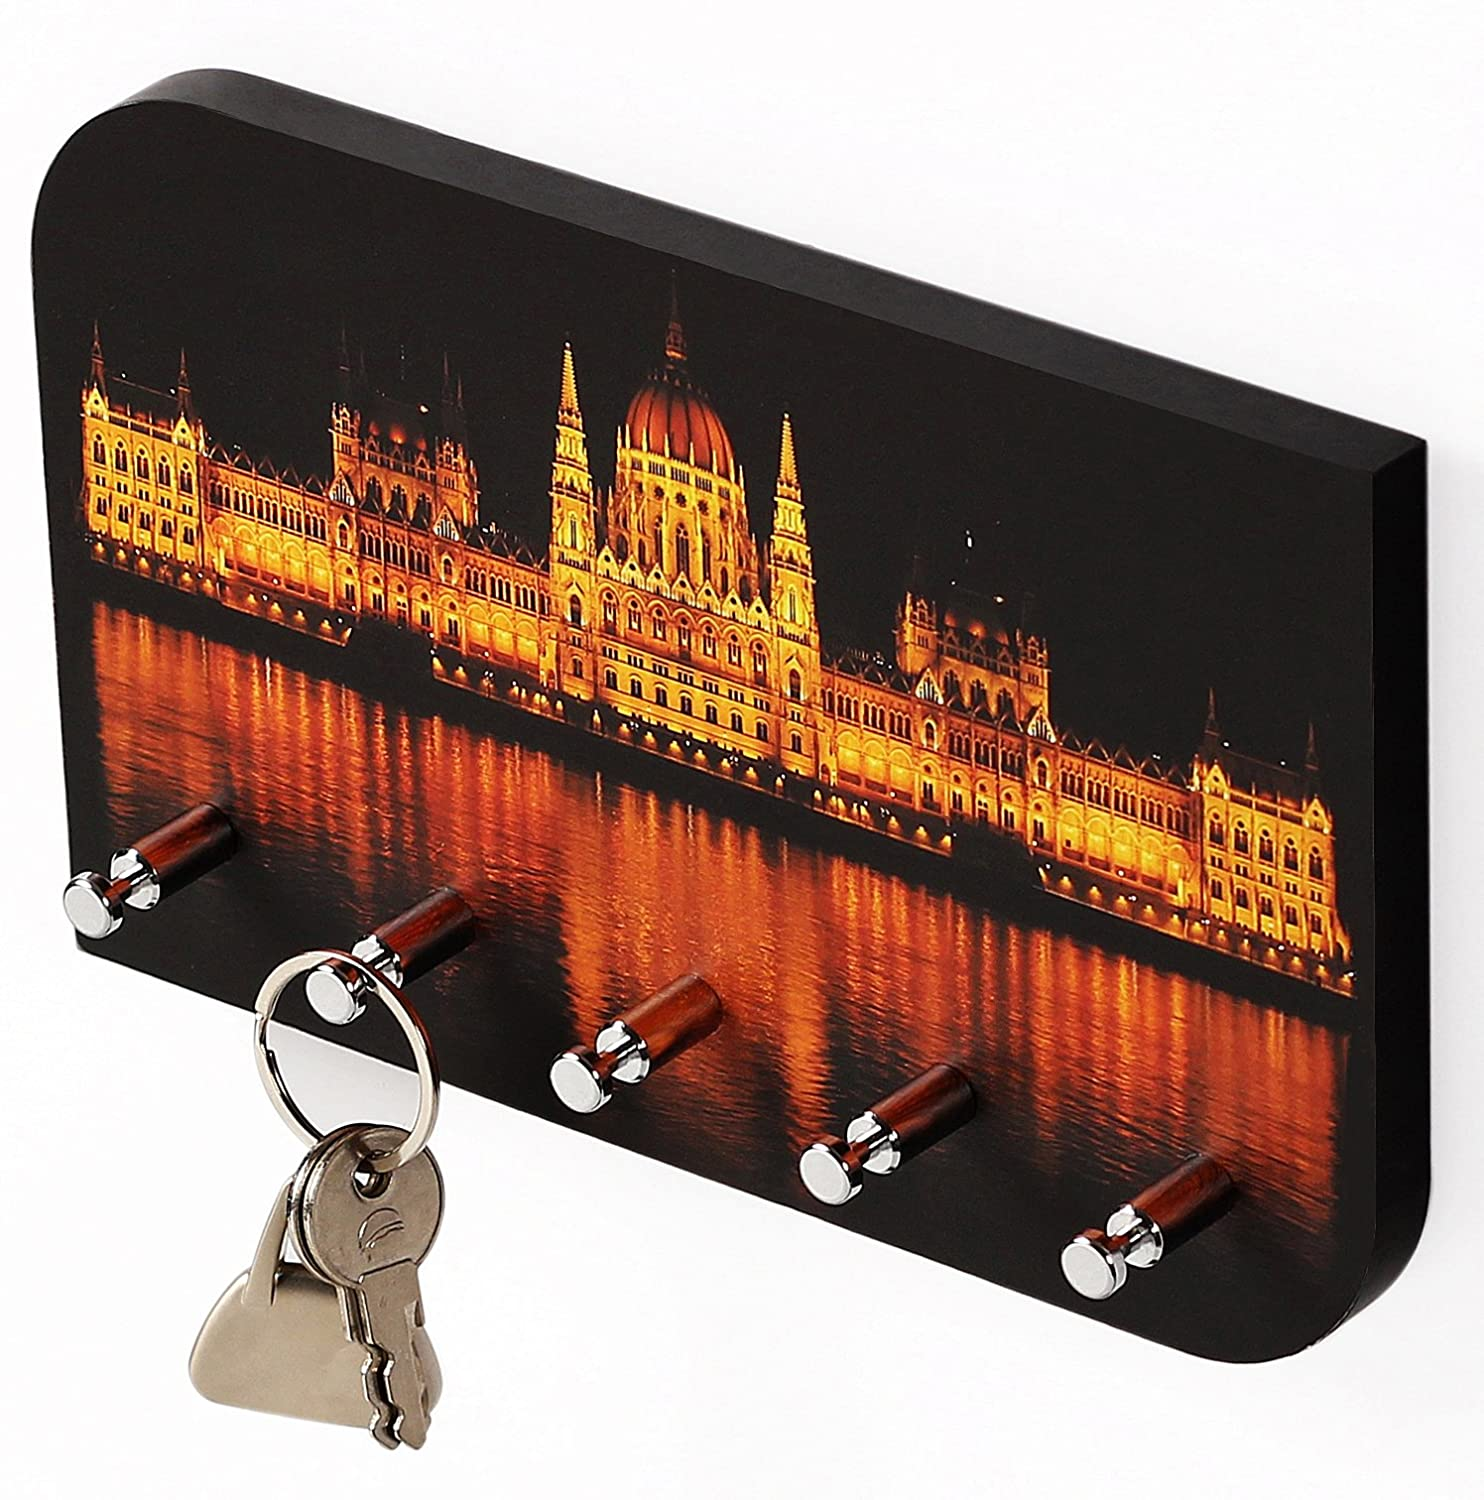 Bluewud Vivid Khvdpn Key Holder Rack Parliament Nightlit